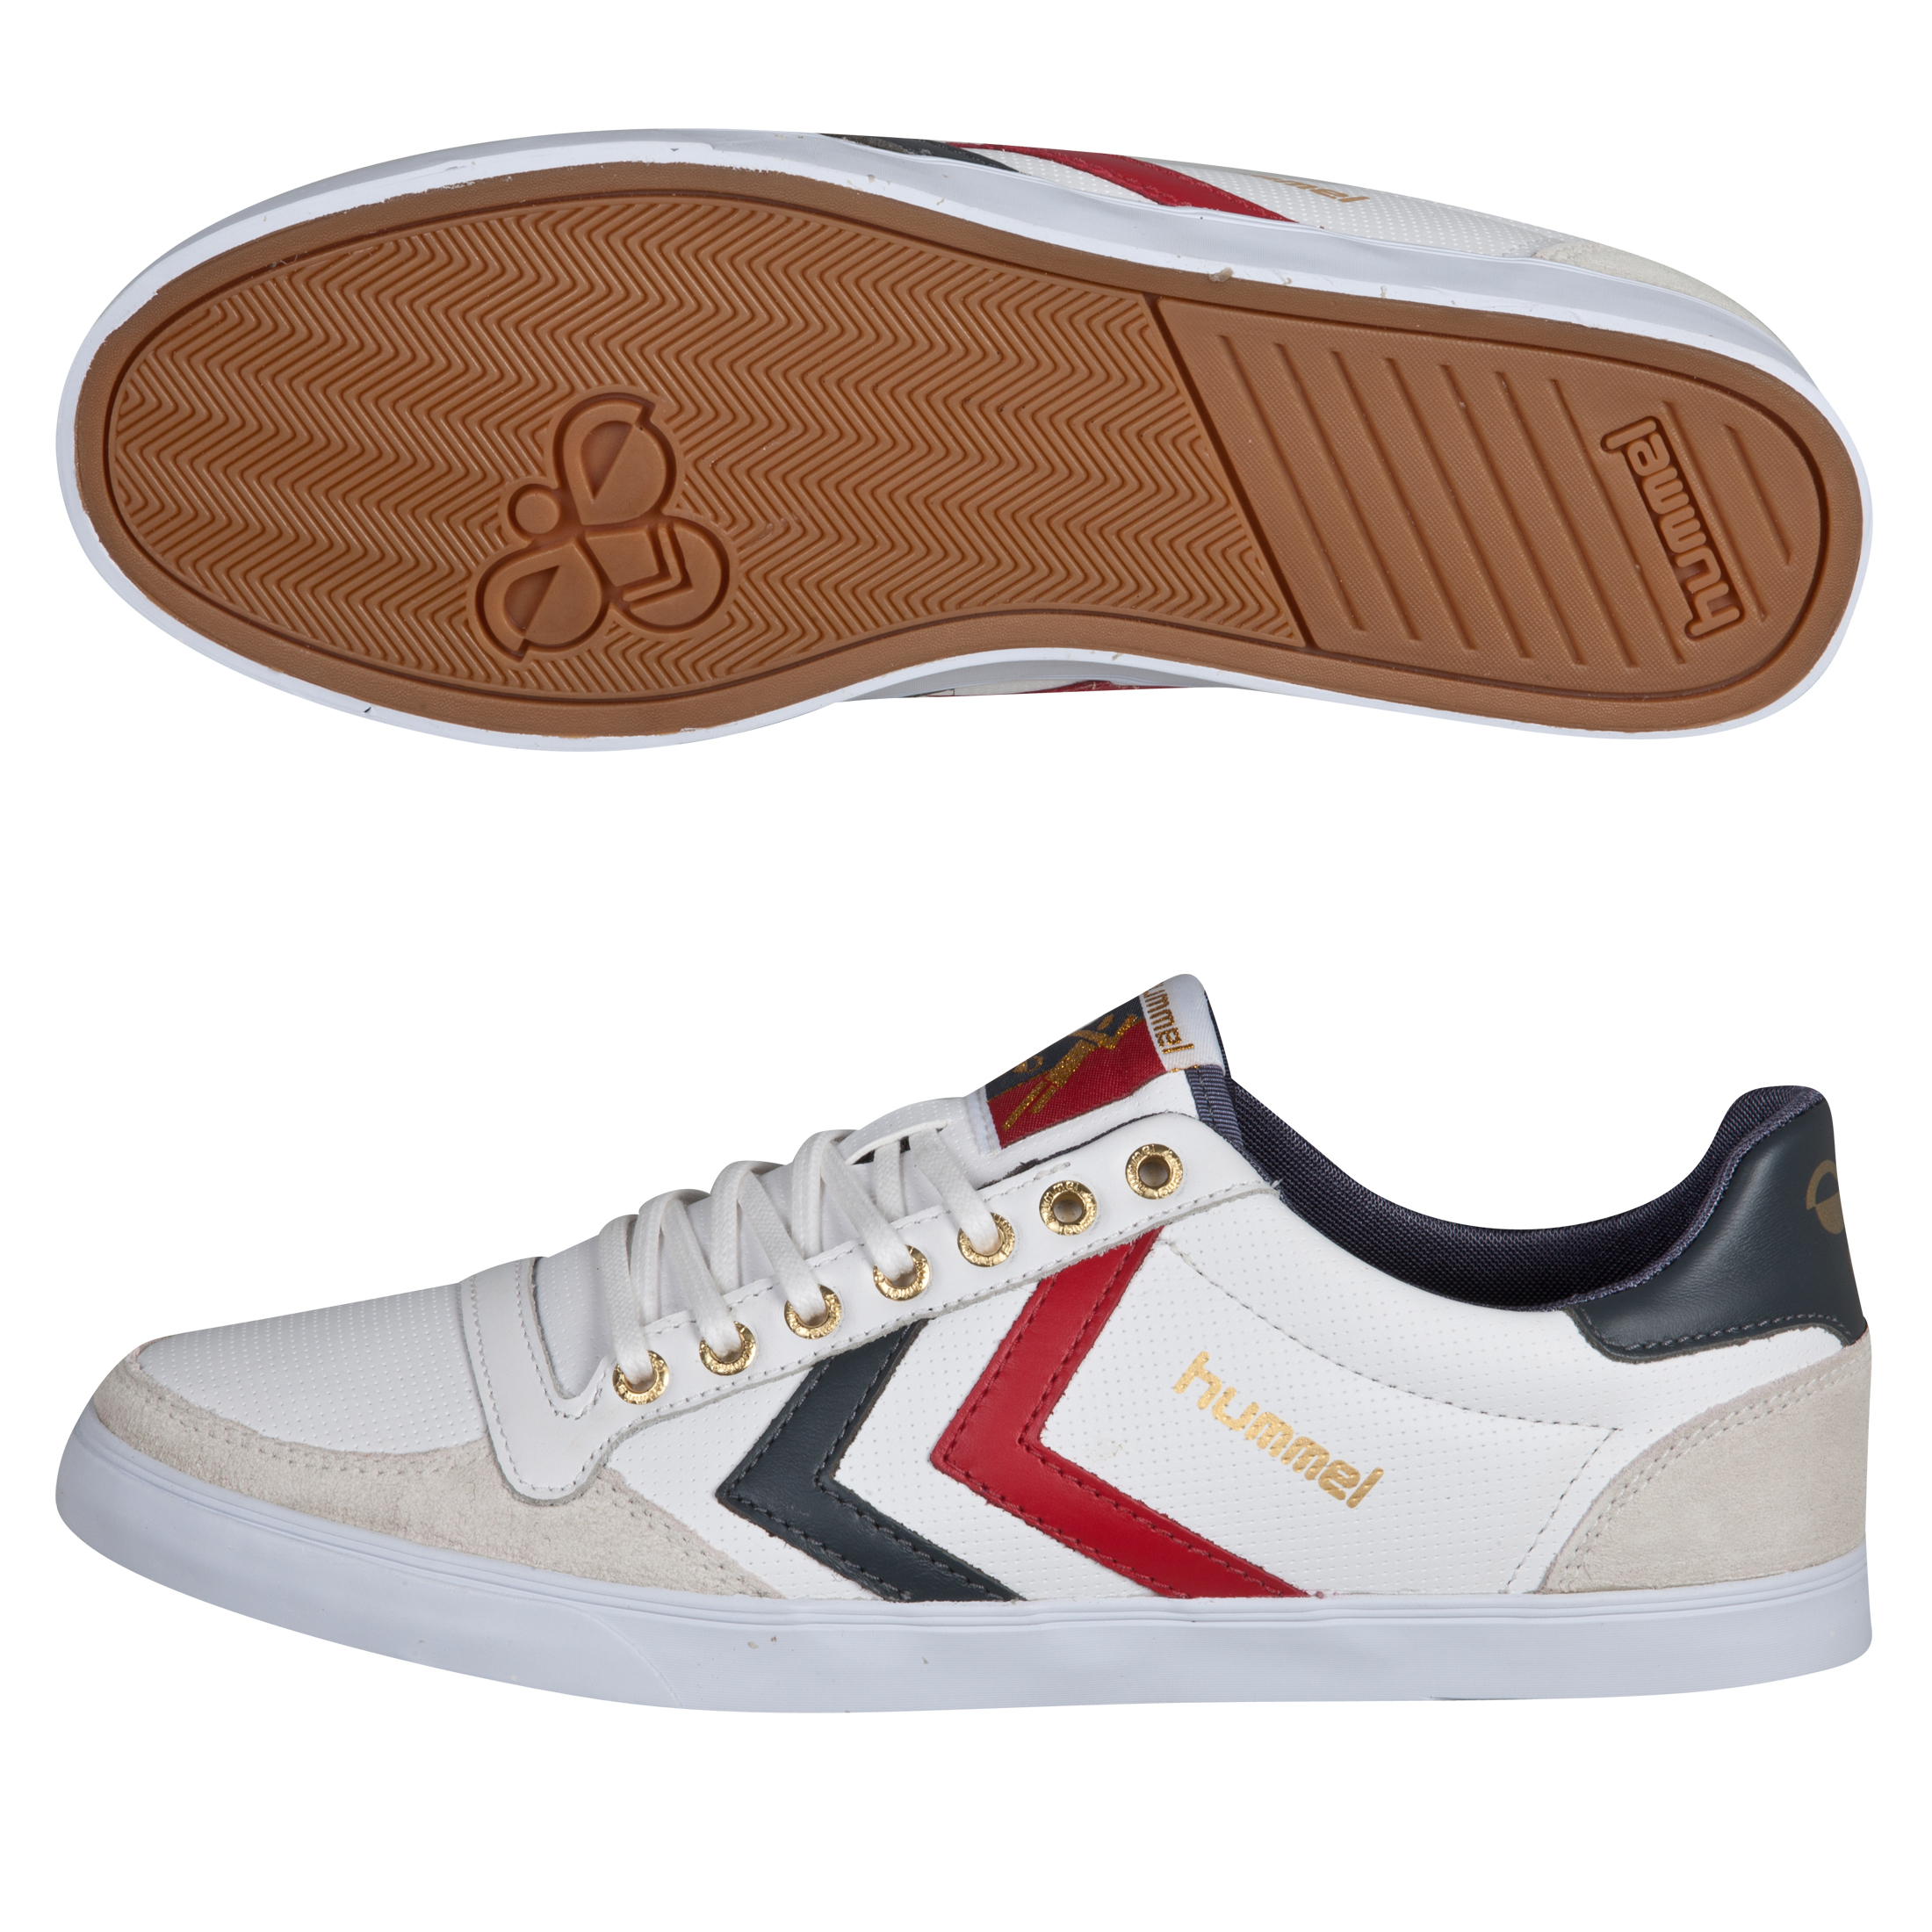 Hummel Slimmer Stadil Low Perf Leather Trainers - White/Castlerock/Ribbon Red